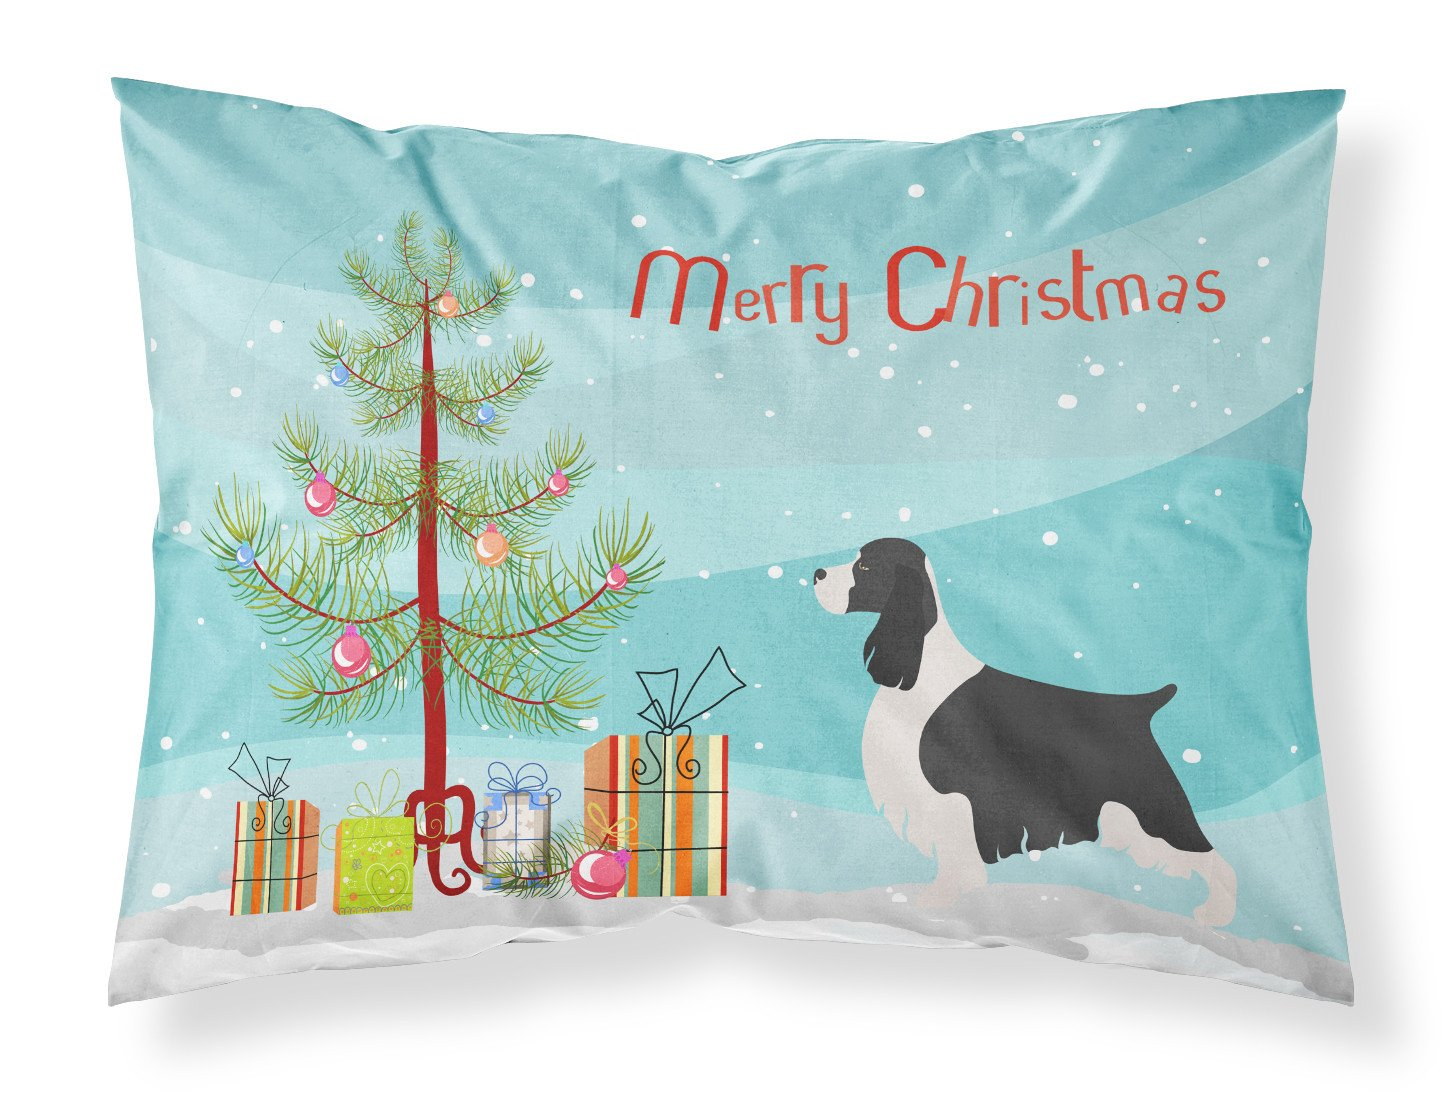 English Springer Spaniel Christmas Fabric Standard Pillowcase BB8435PILLOWCASE by Caroline's Treasures